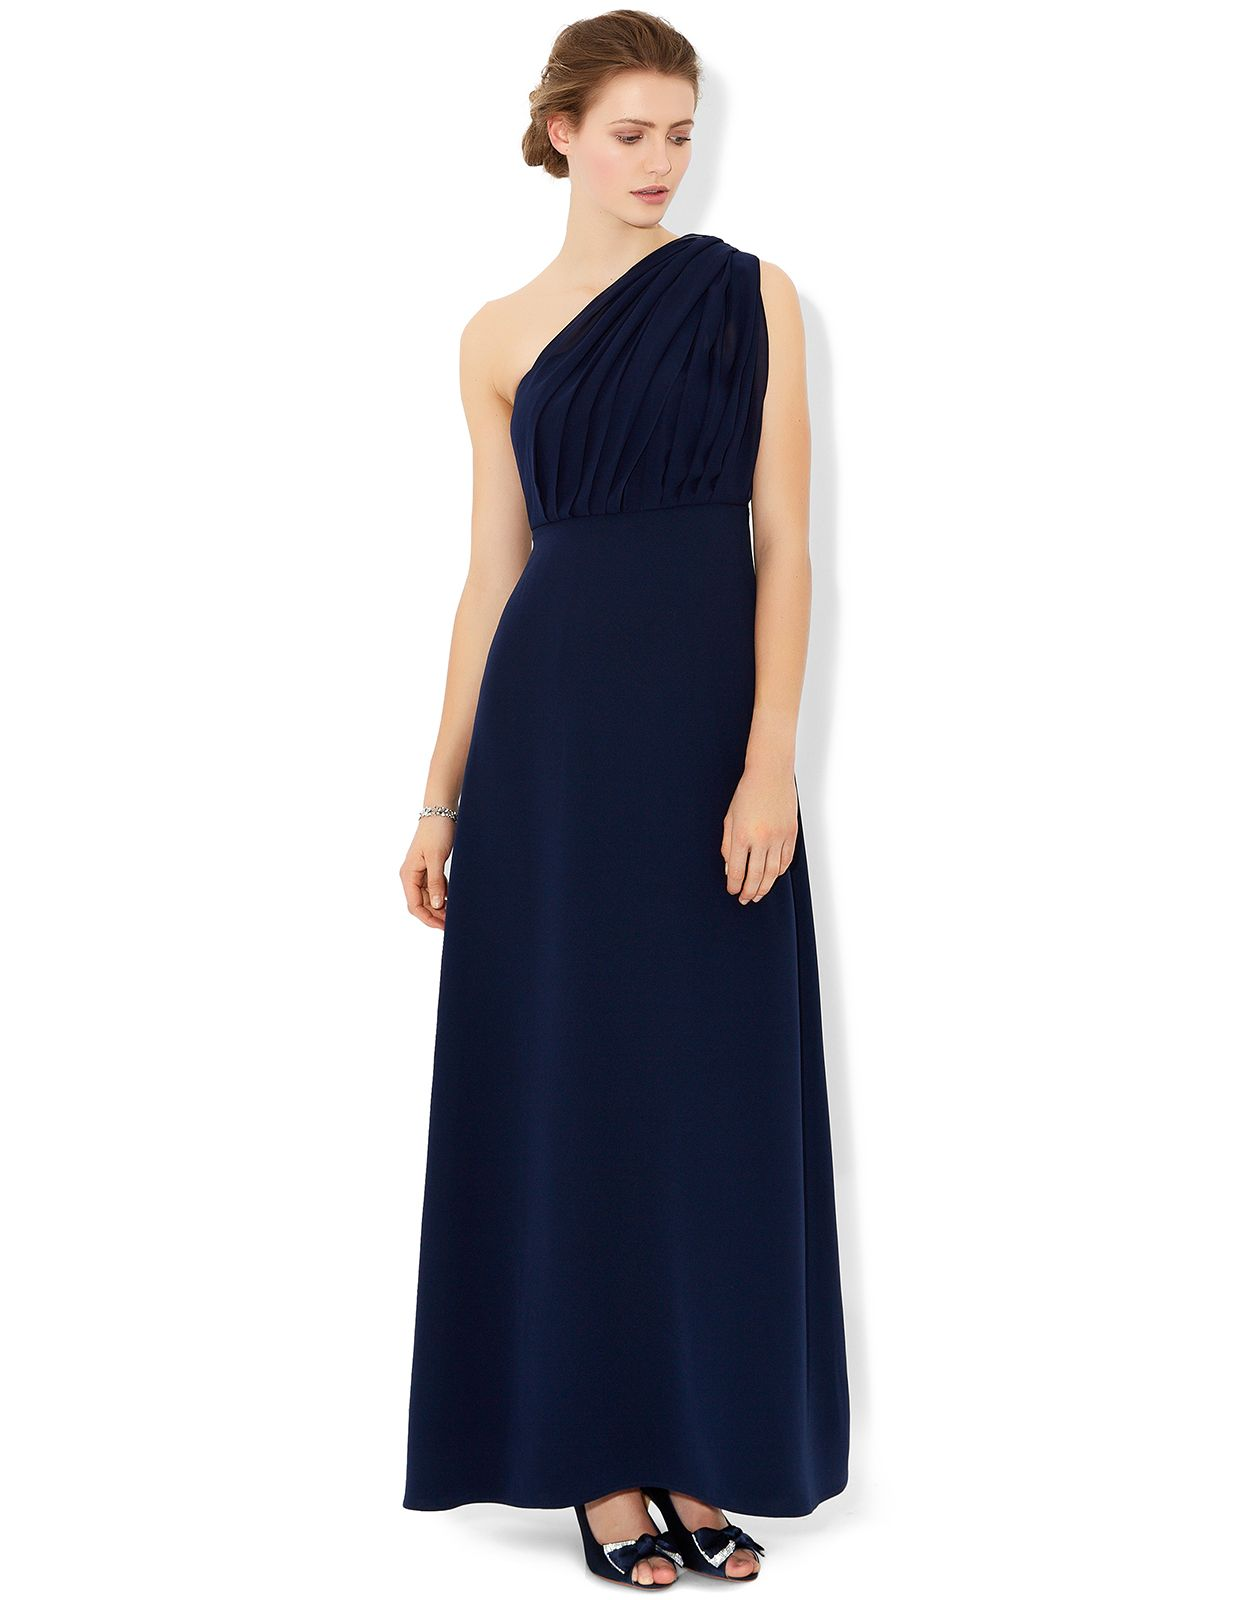 Neive maxi dress bits and bobs pinterest maxi dresses and weddings